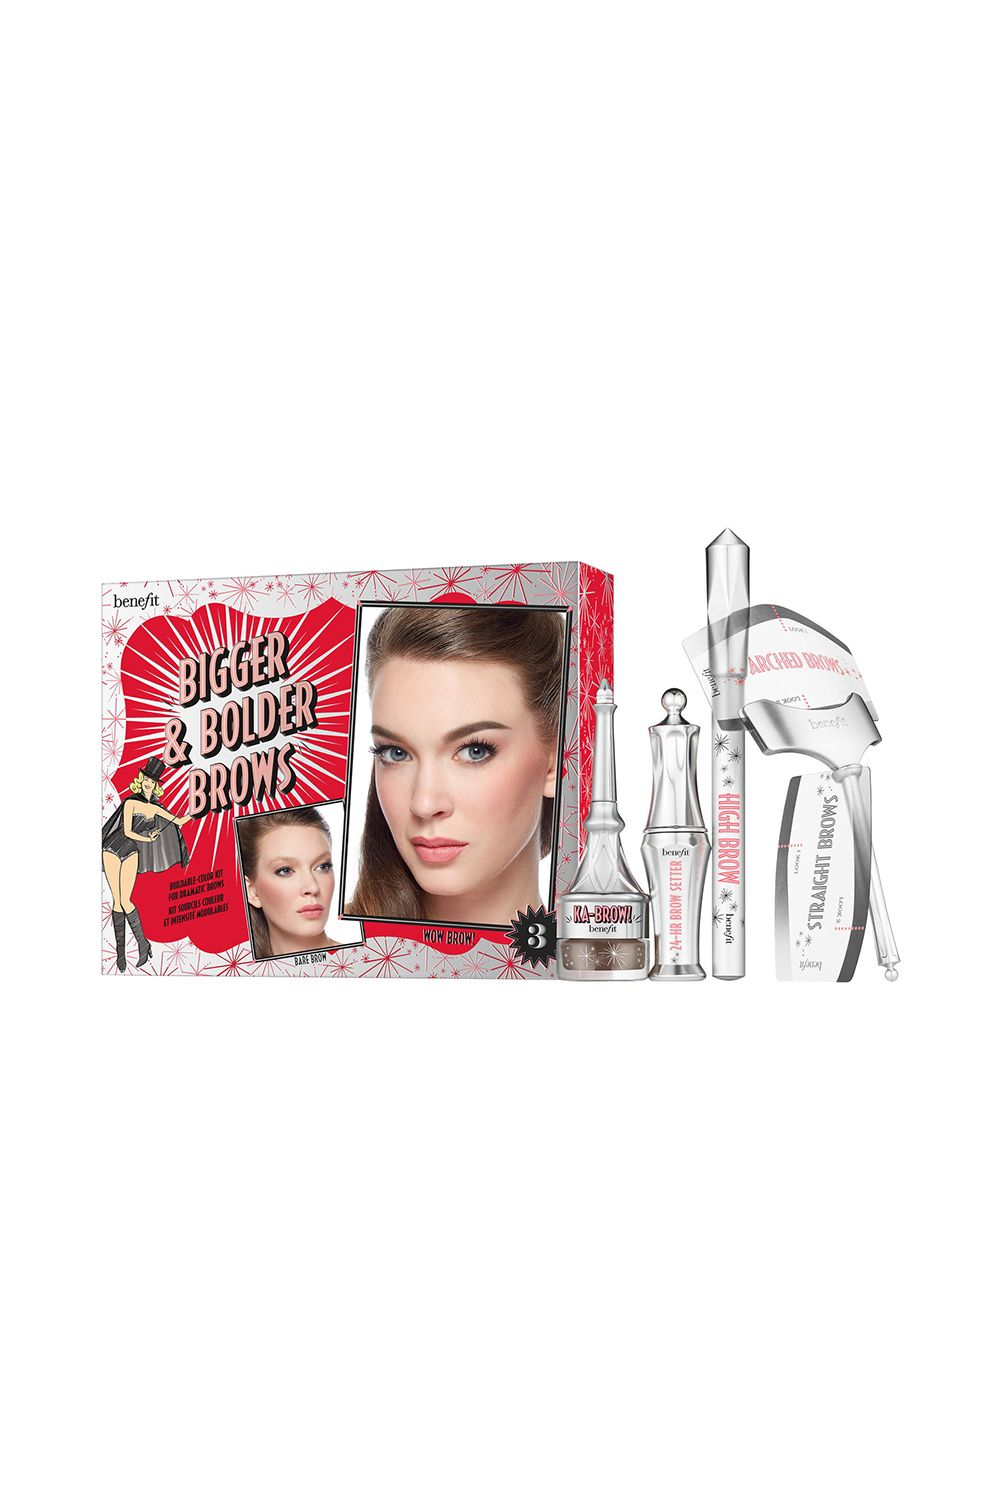 This Do-It-All Brow Kit Benefit Bigger & Bolder Brows Kit Buildable Color Kit for Dramatic Brows Are you a fan of bold brows? You need to get your hands on this kit full of everything you need to create the best-looking brows.